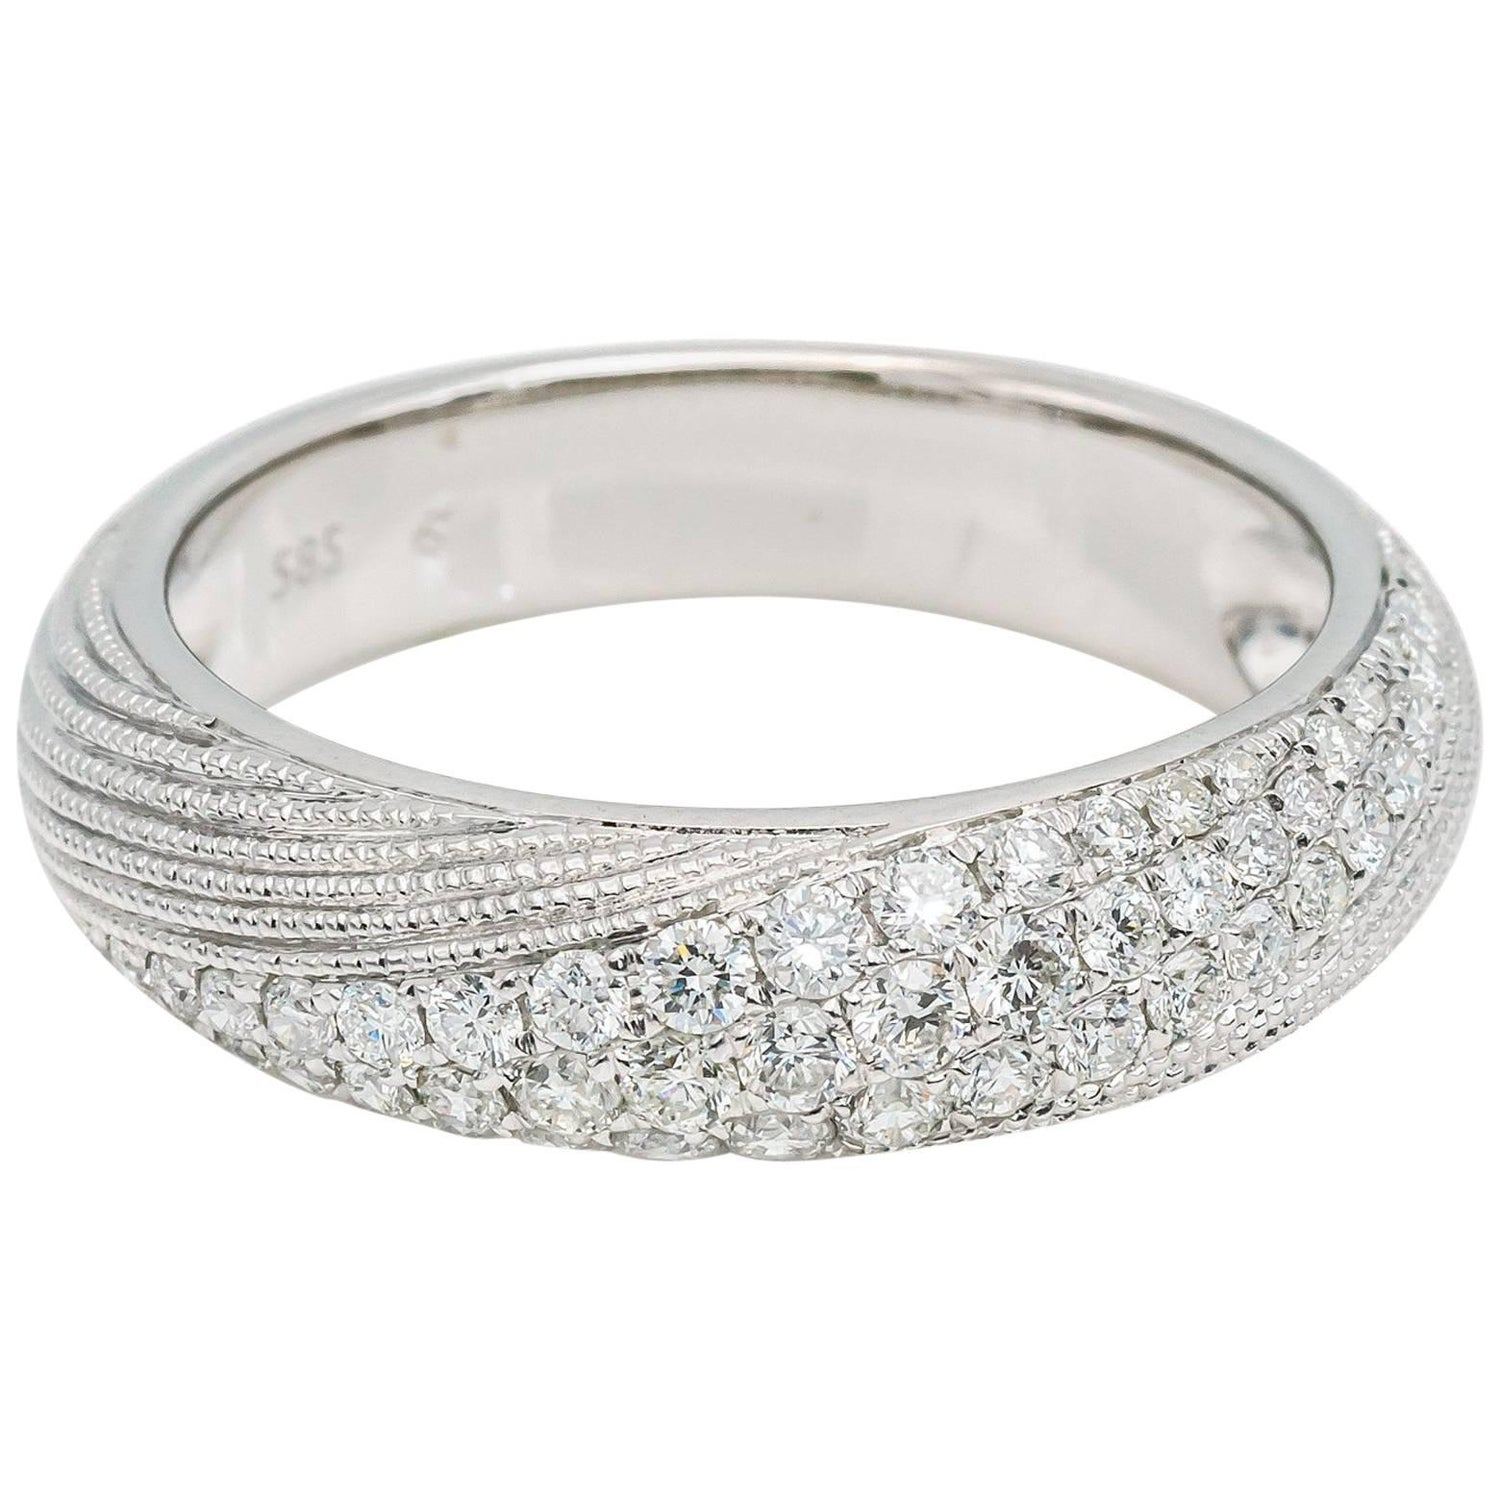 Pave Diamonds Wedding Band Ring White Gold Torsade Texture For Sale at  1stDibs